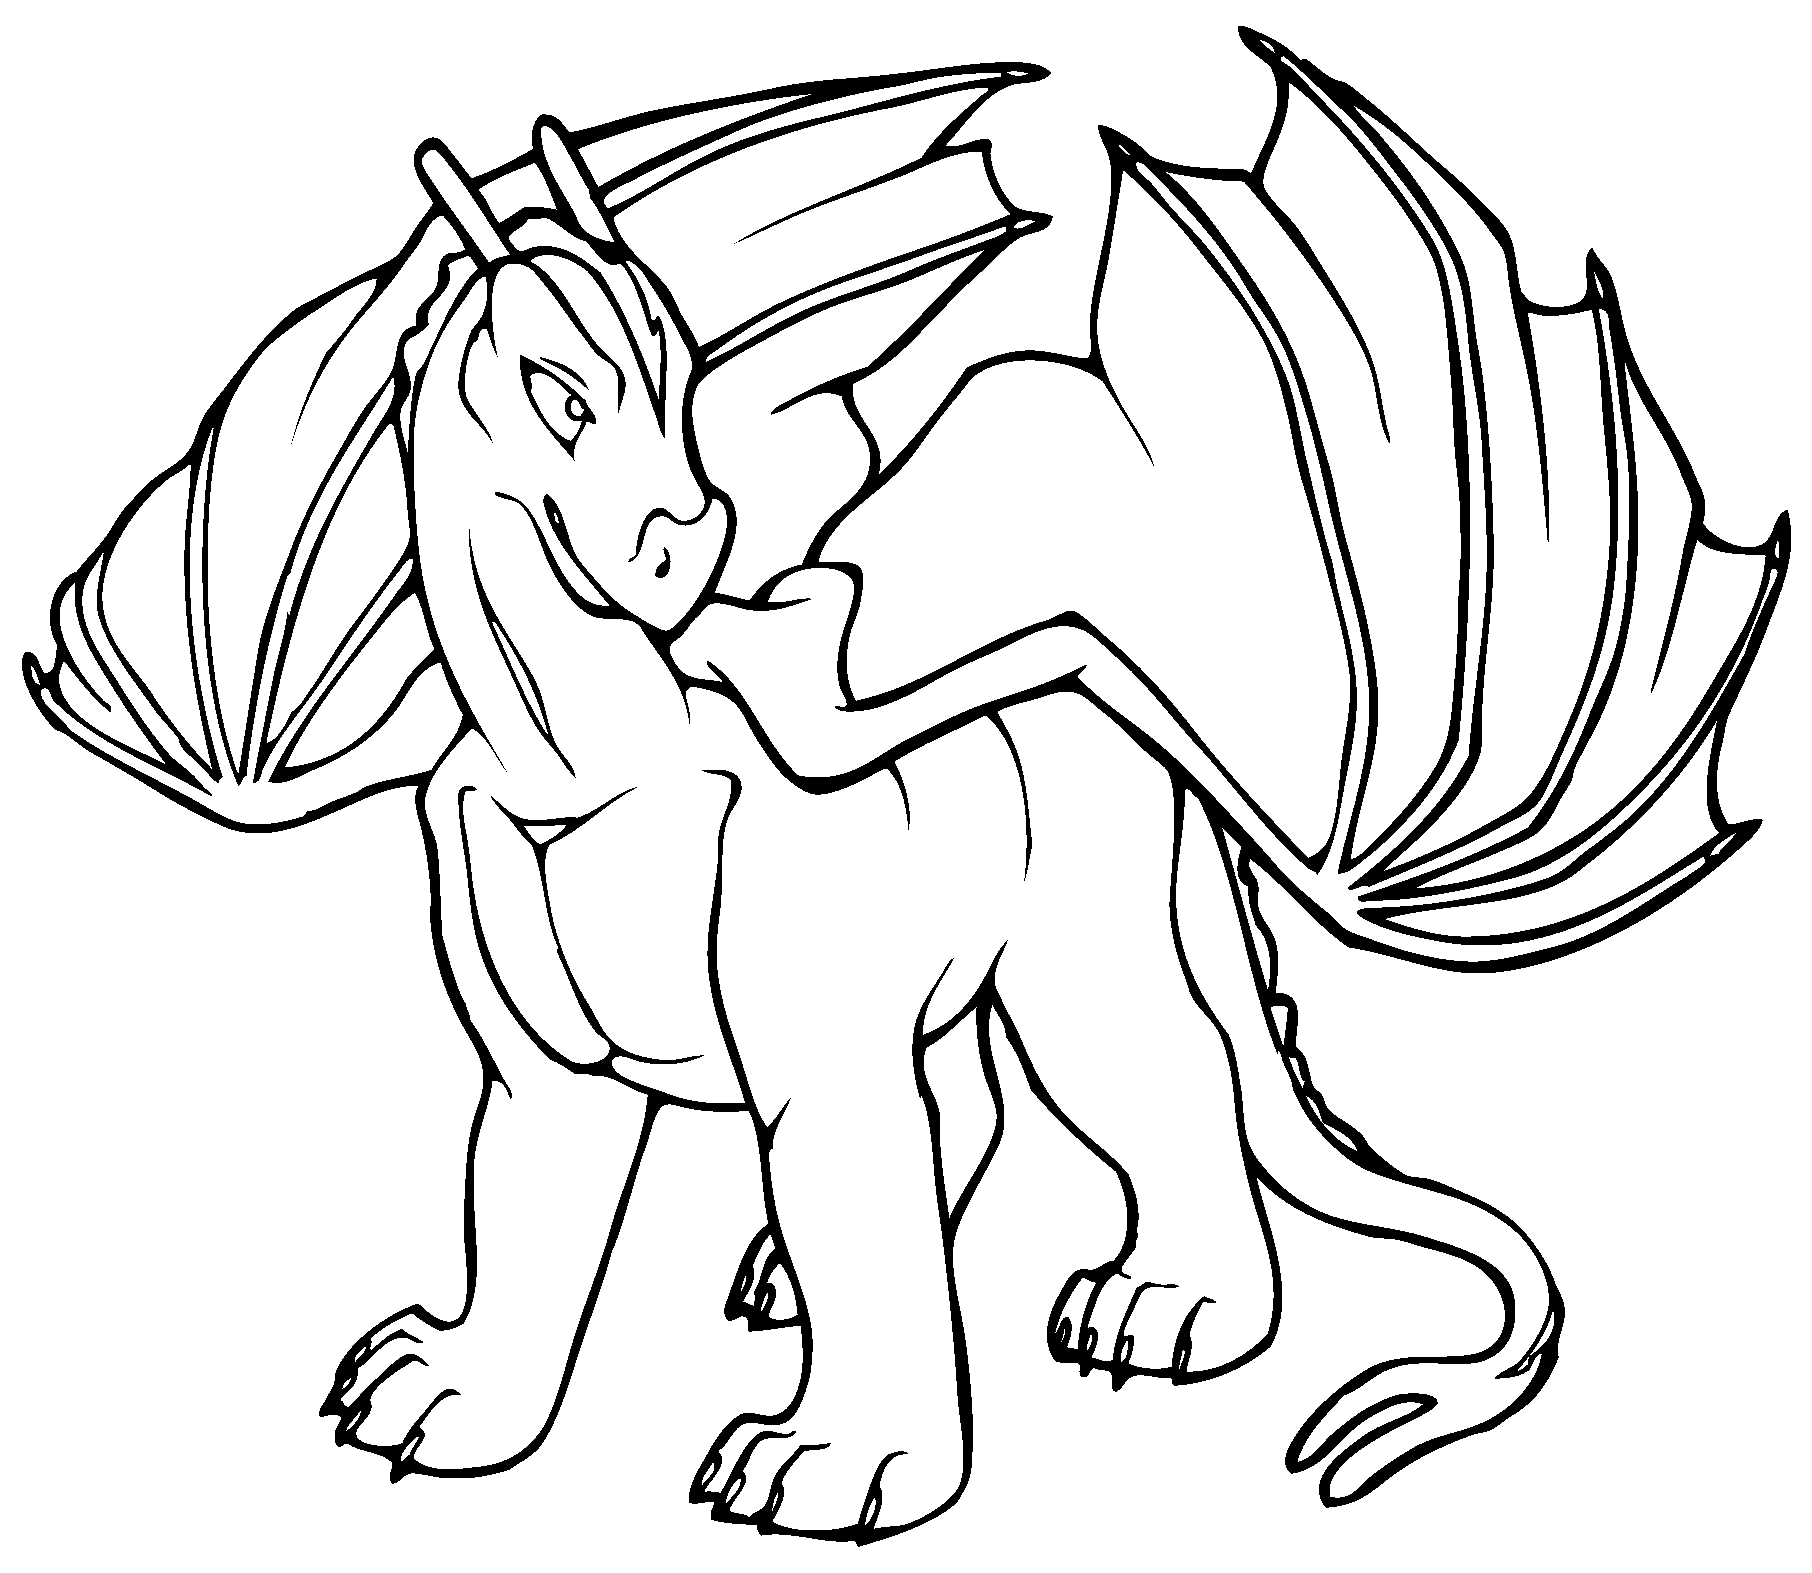 Free Printable Dragon Coloring Pages For Kids | Pinterest | Baby ...